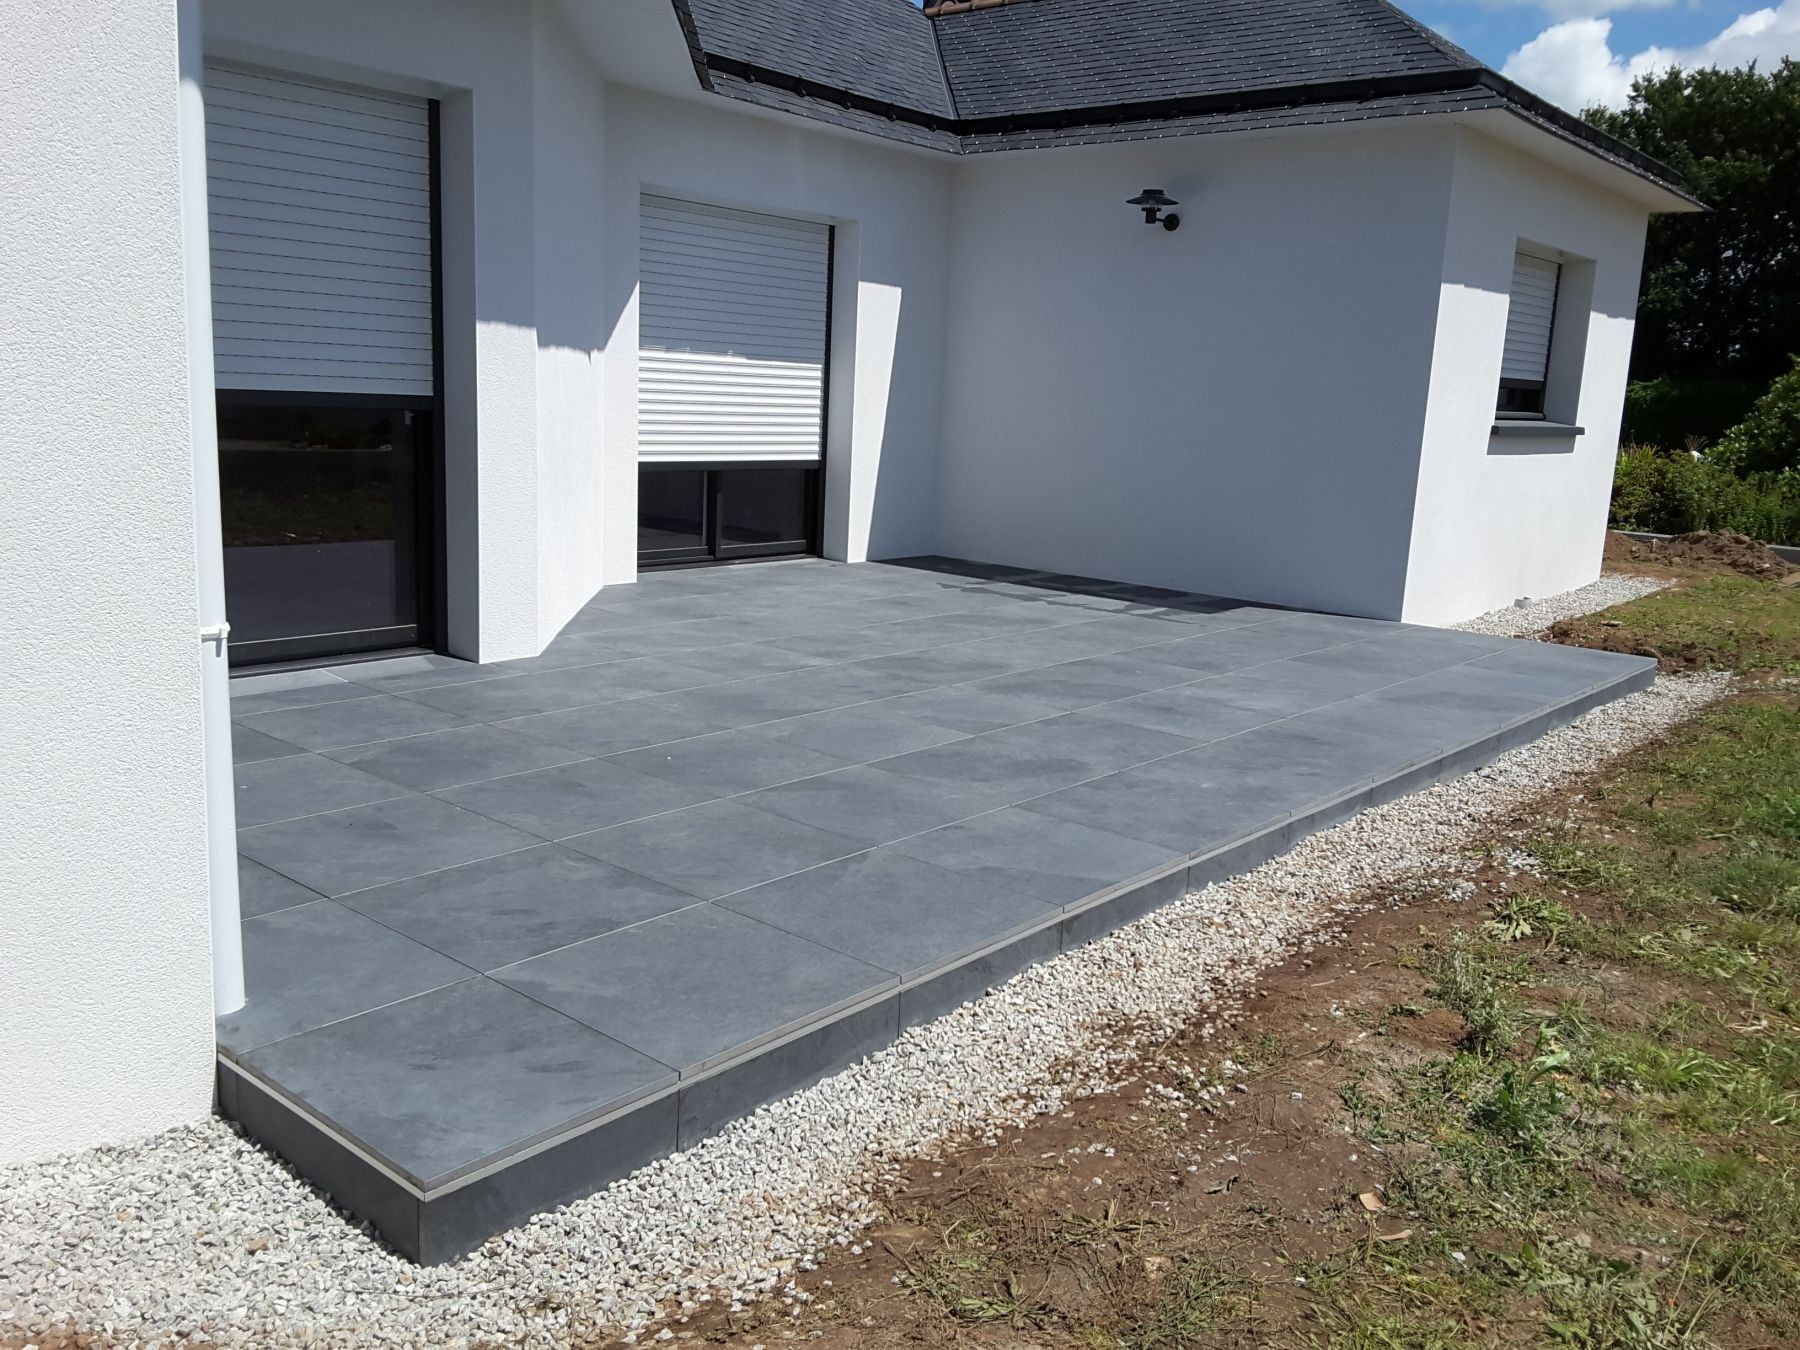 Terrasse bois sur plot ciment diverses for Plot pour dalle beton